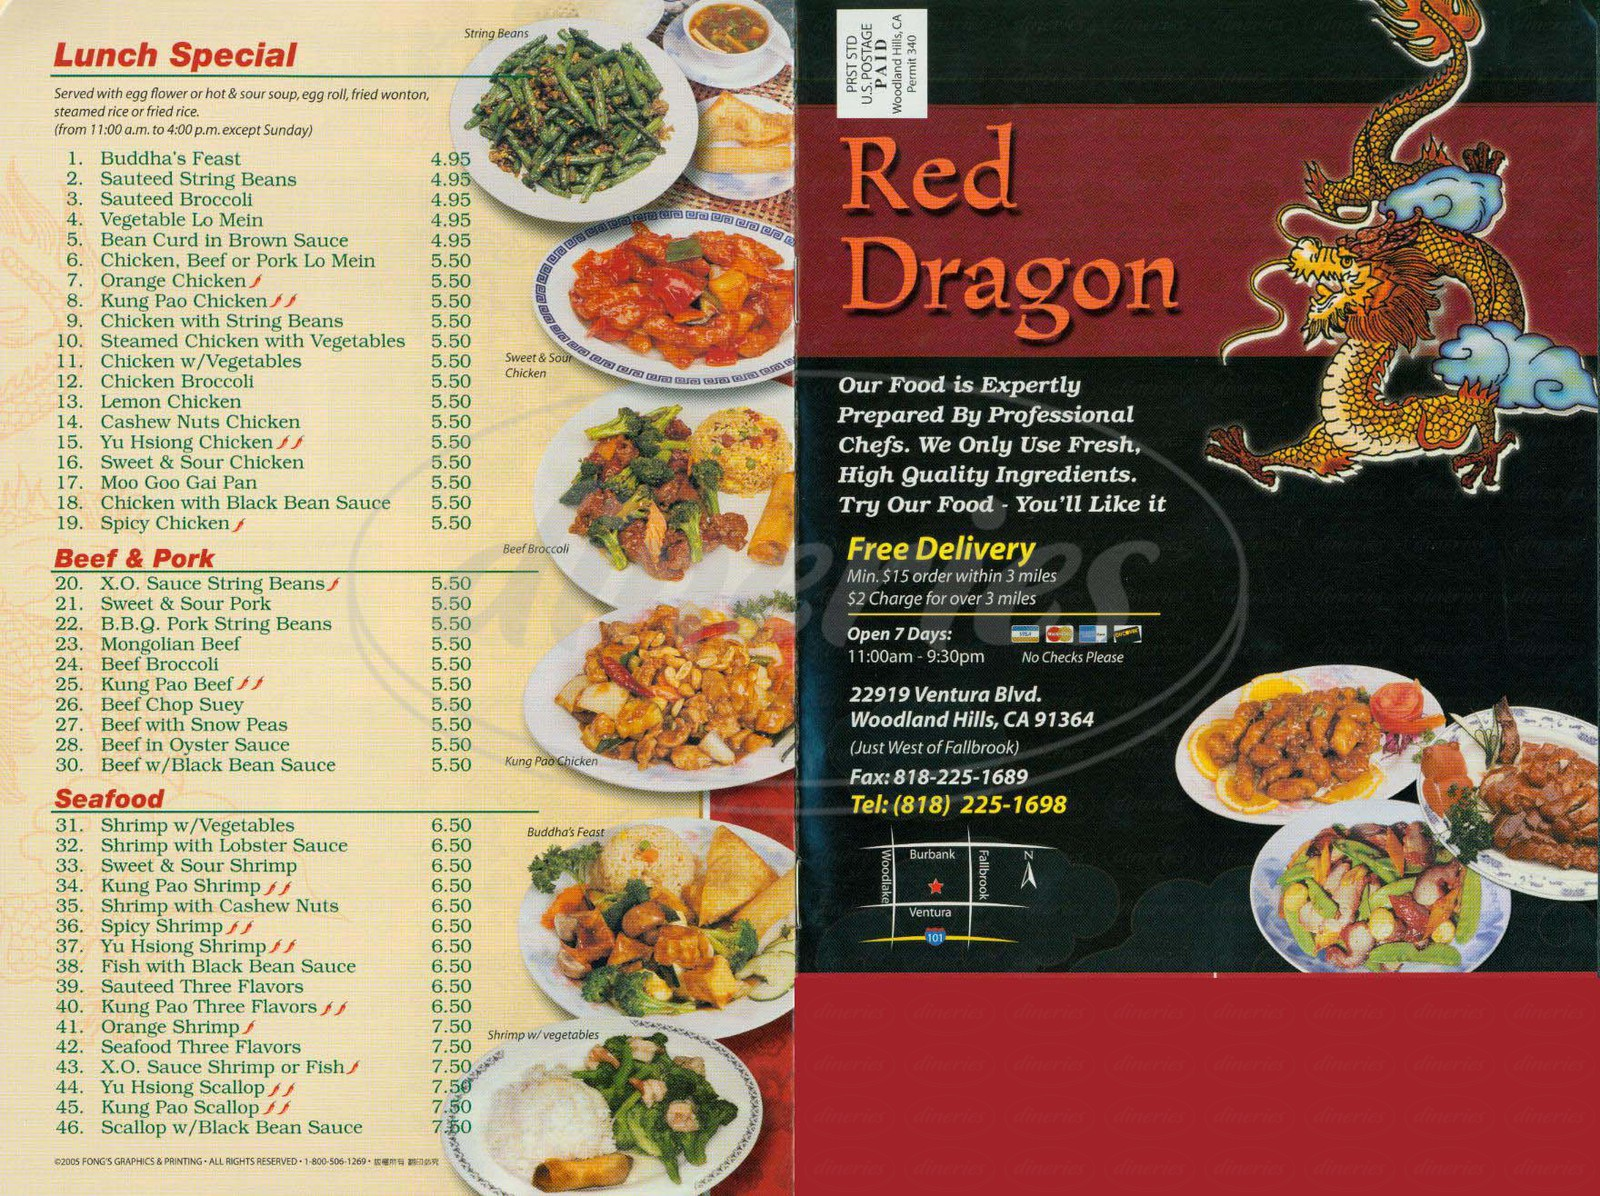 menu for Red Dragon Restaurant